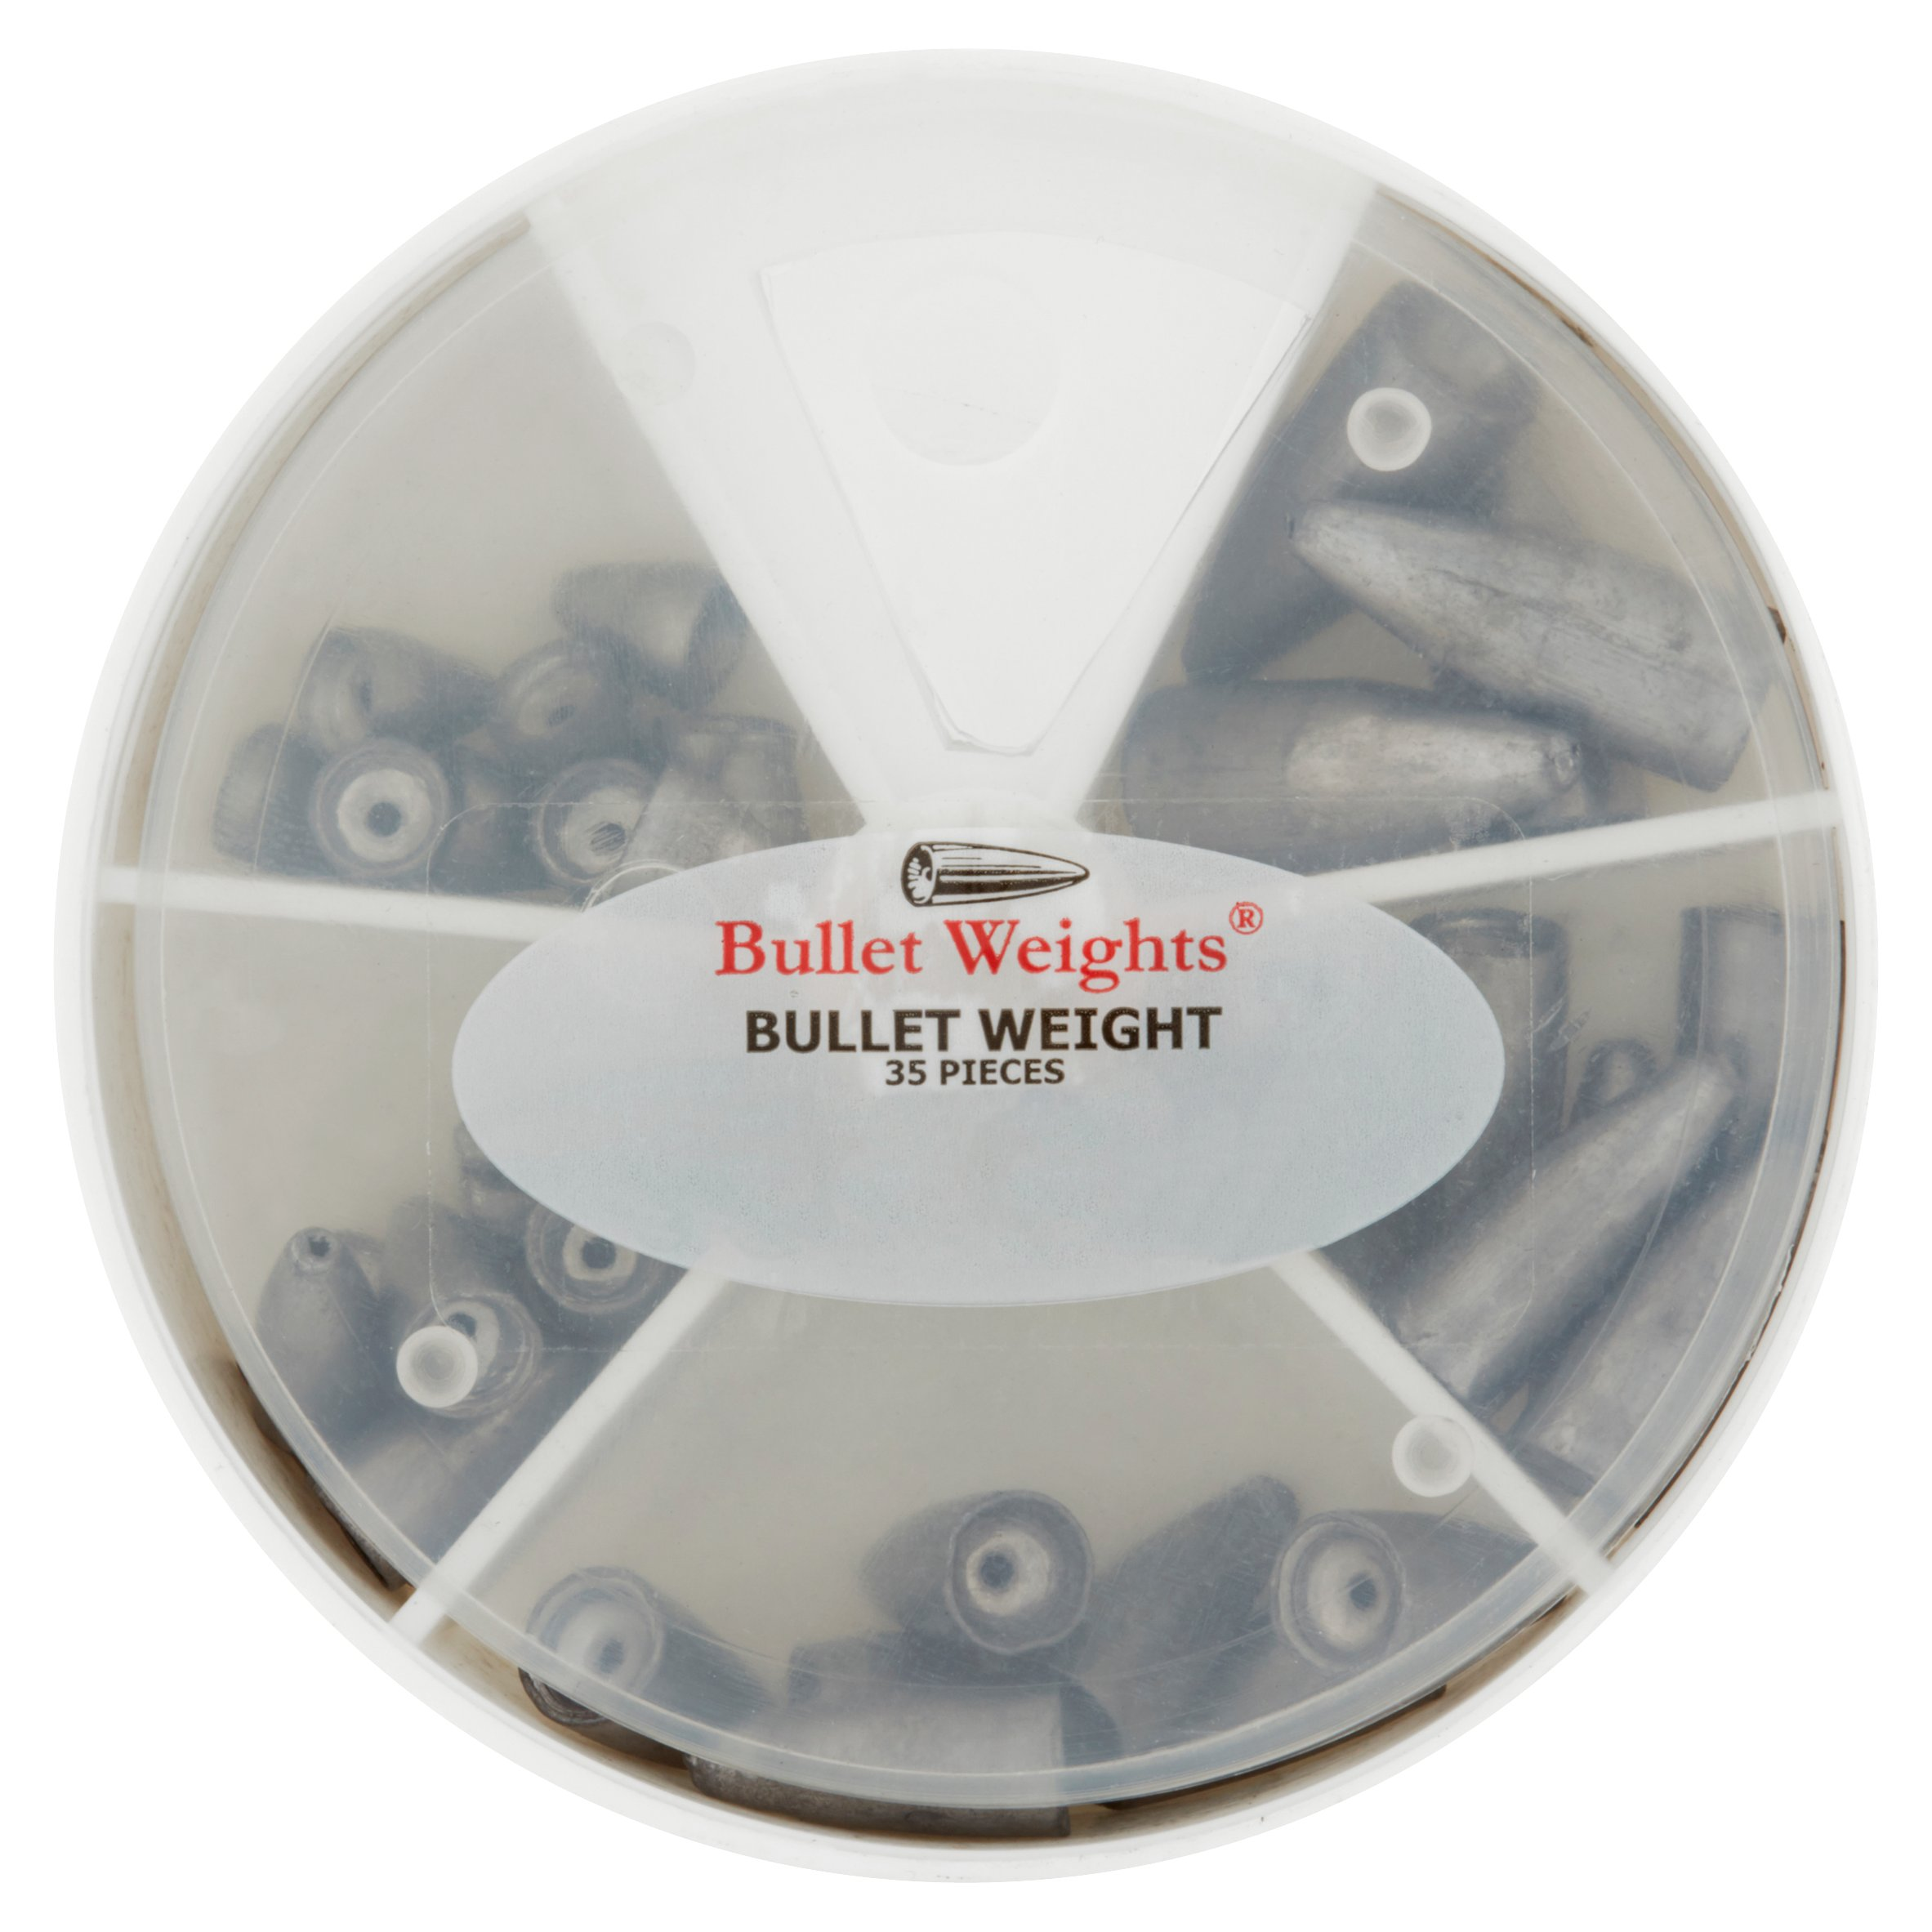 Bullet Weights® Bullet Weight skillet, 35 sinkers